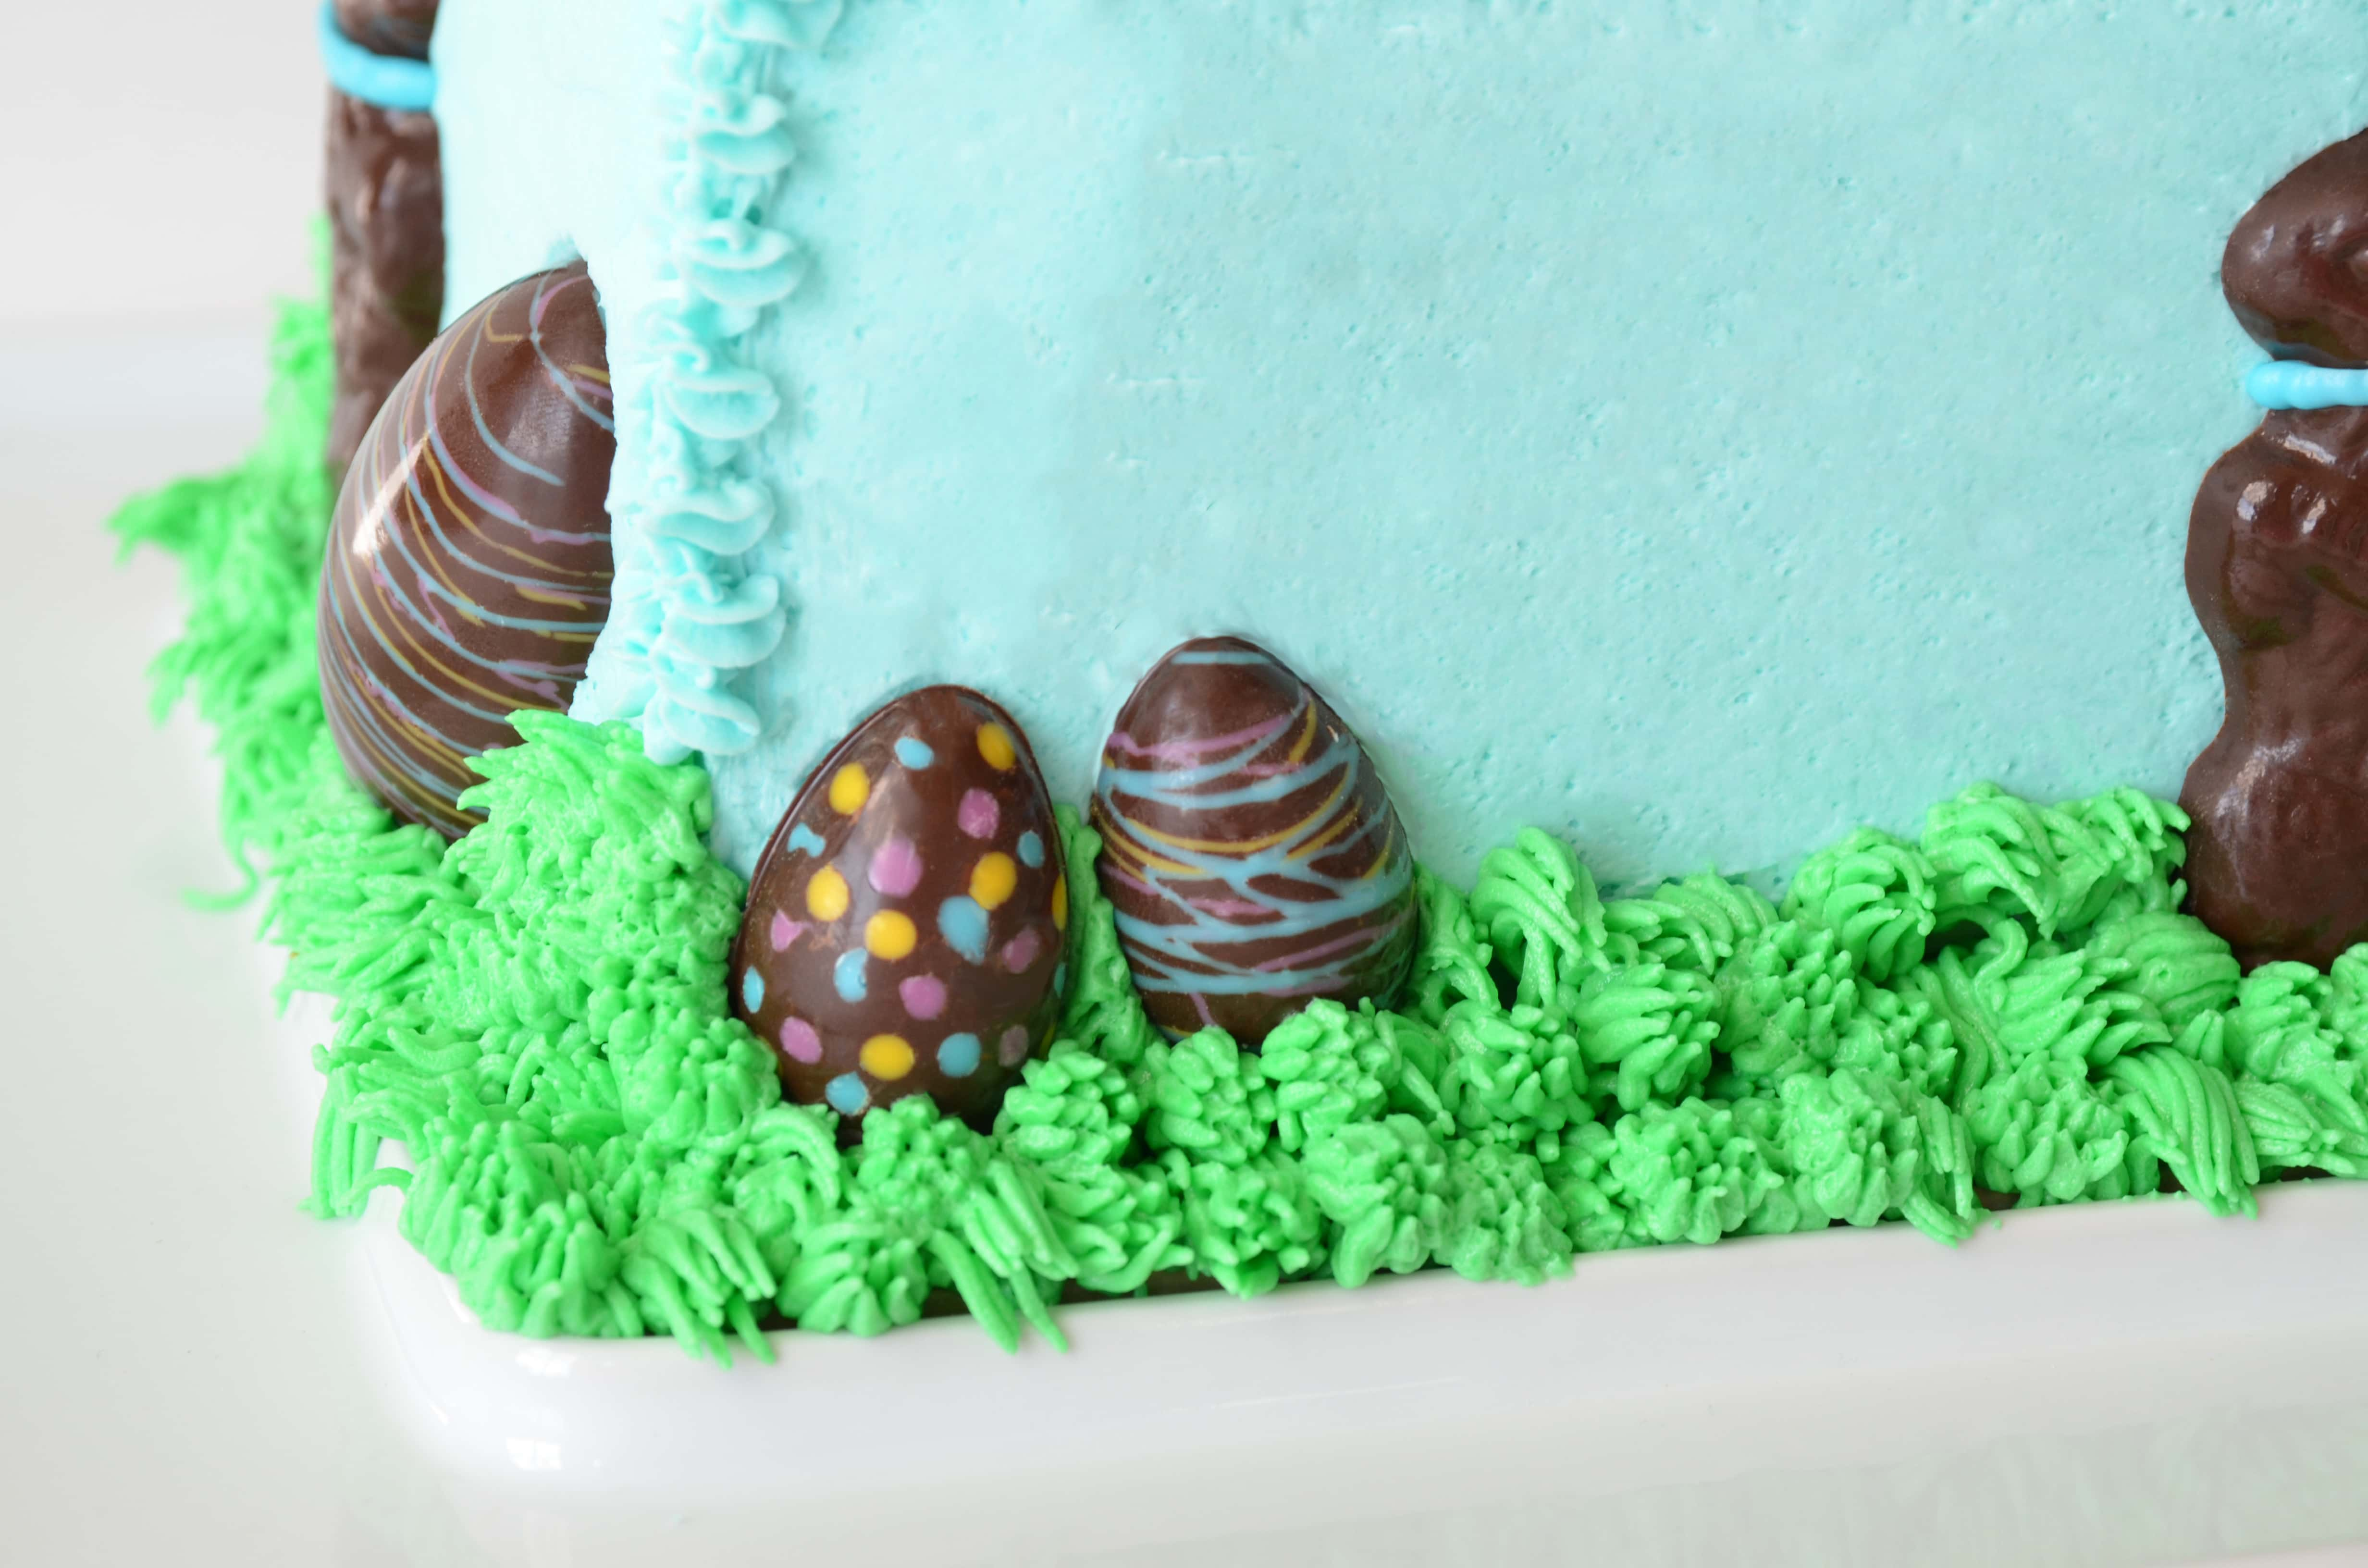 sn't love the Easter Bunny? Make this hippity-hoppity cake from scratch for your Easter celebration! impress the most discerning Easter guest. | vintagekitty.com